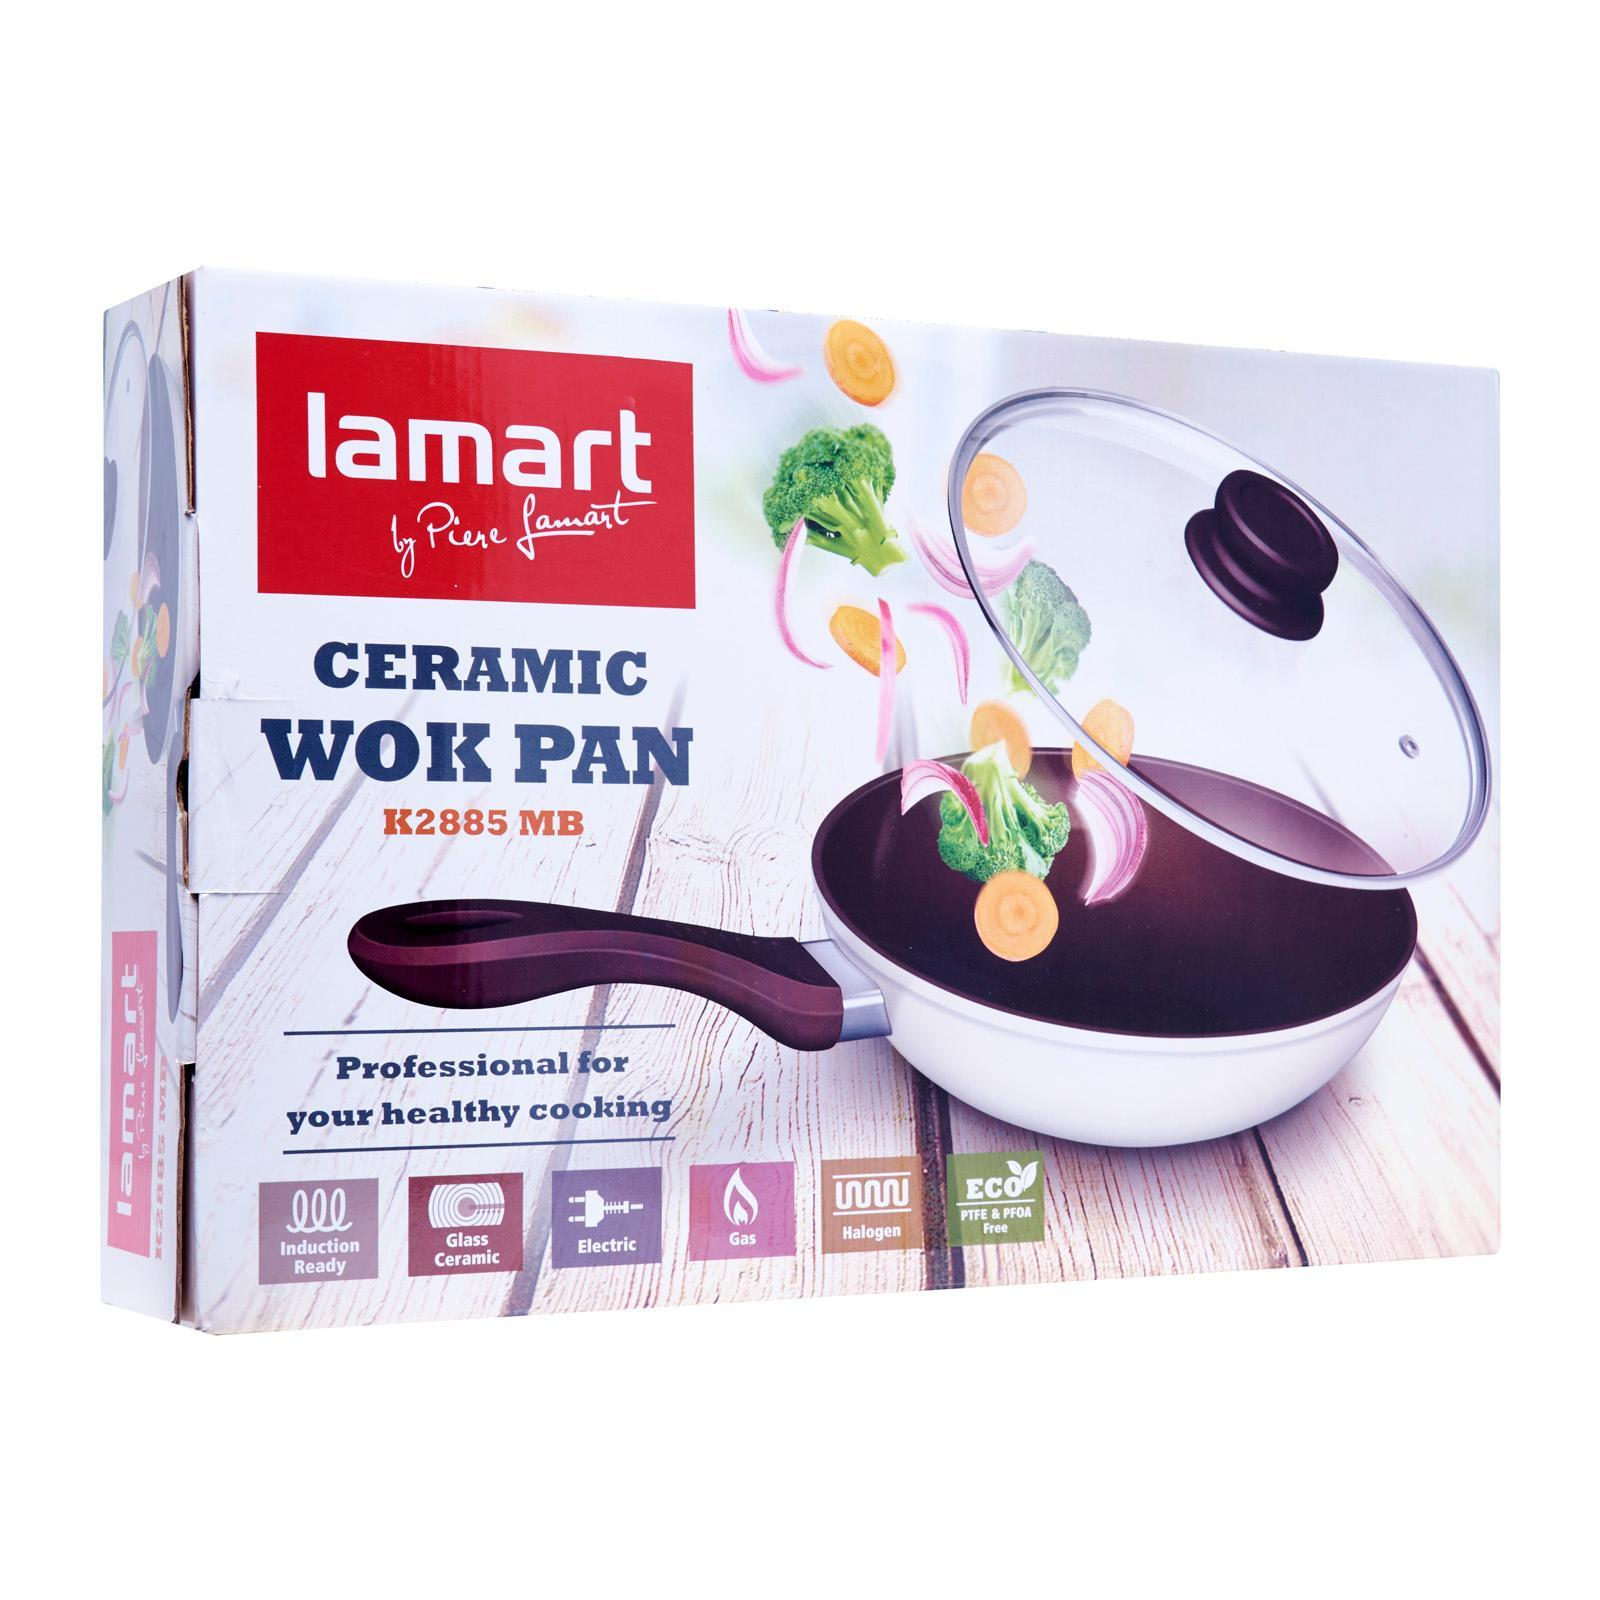 Lamart Induction Ready Ceramic Pan With Glass Lid 28/8.5Cm